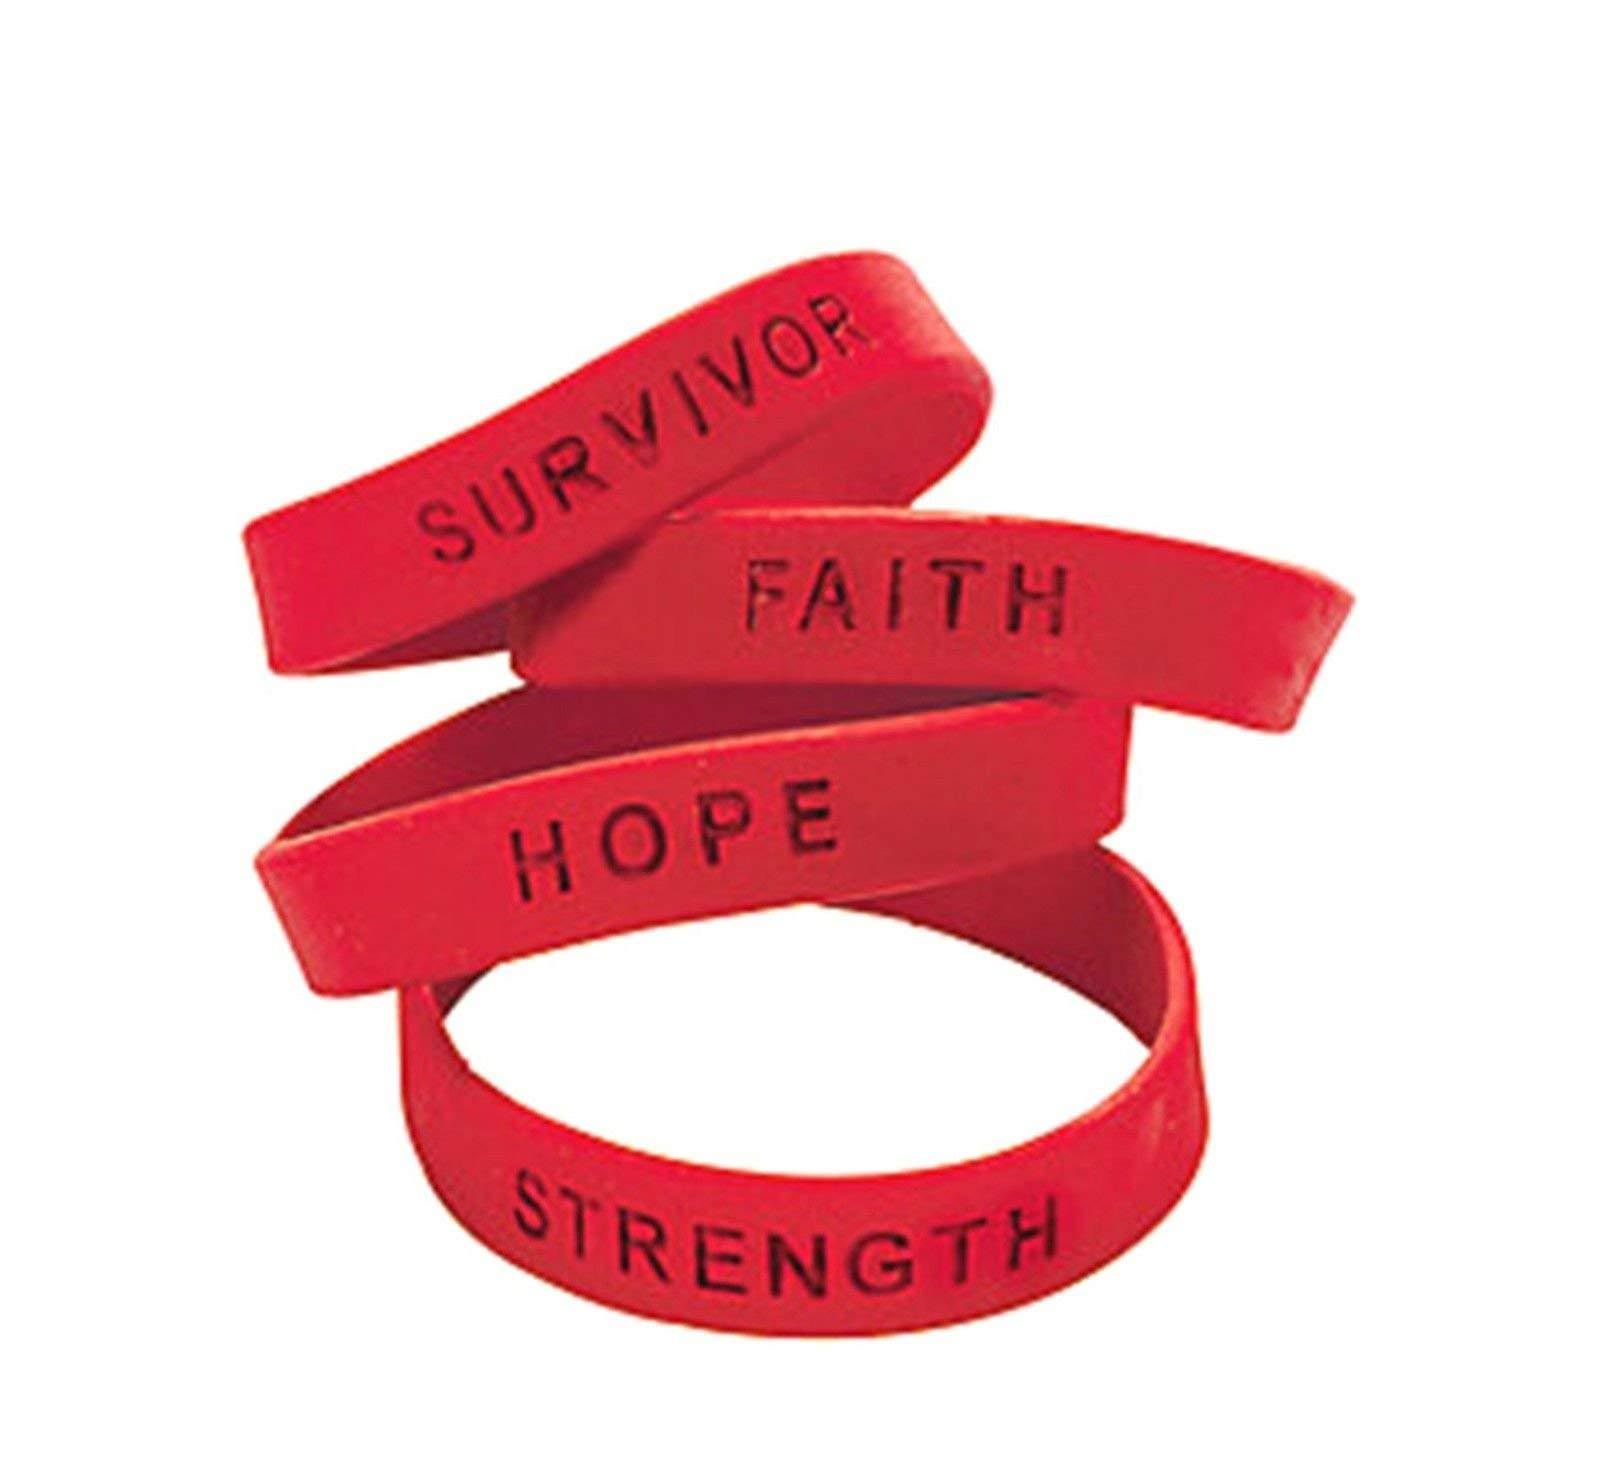 120 RED Ribbon AIDS Awareness rubber bracelets